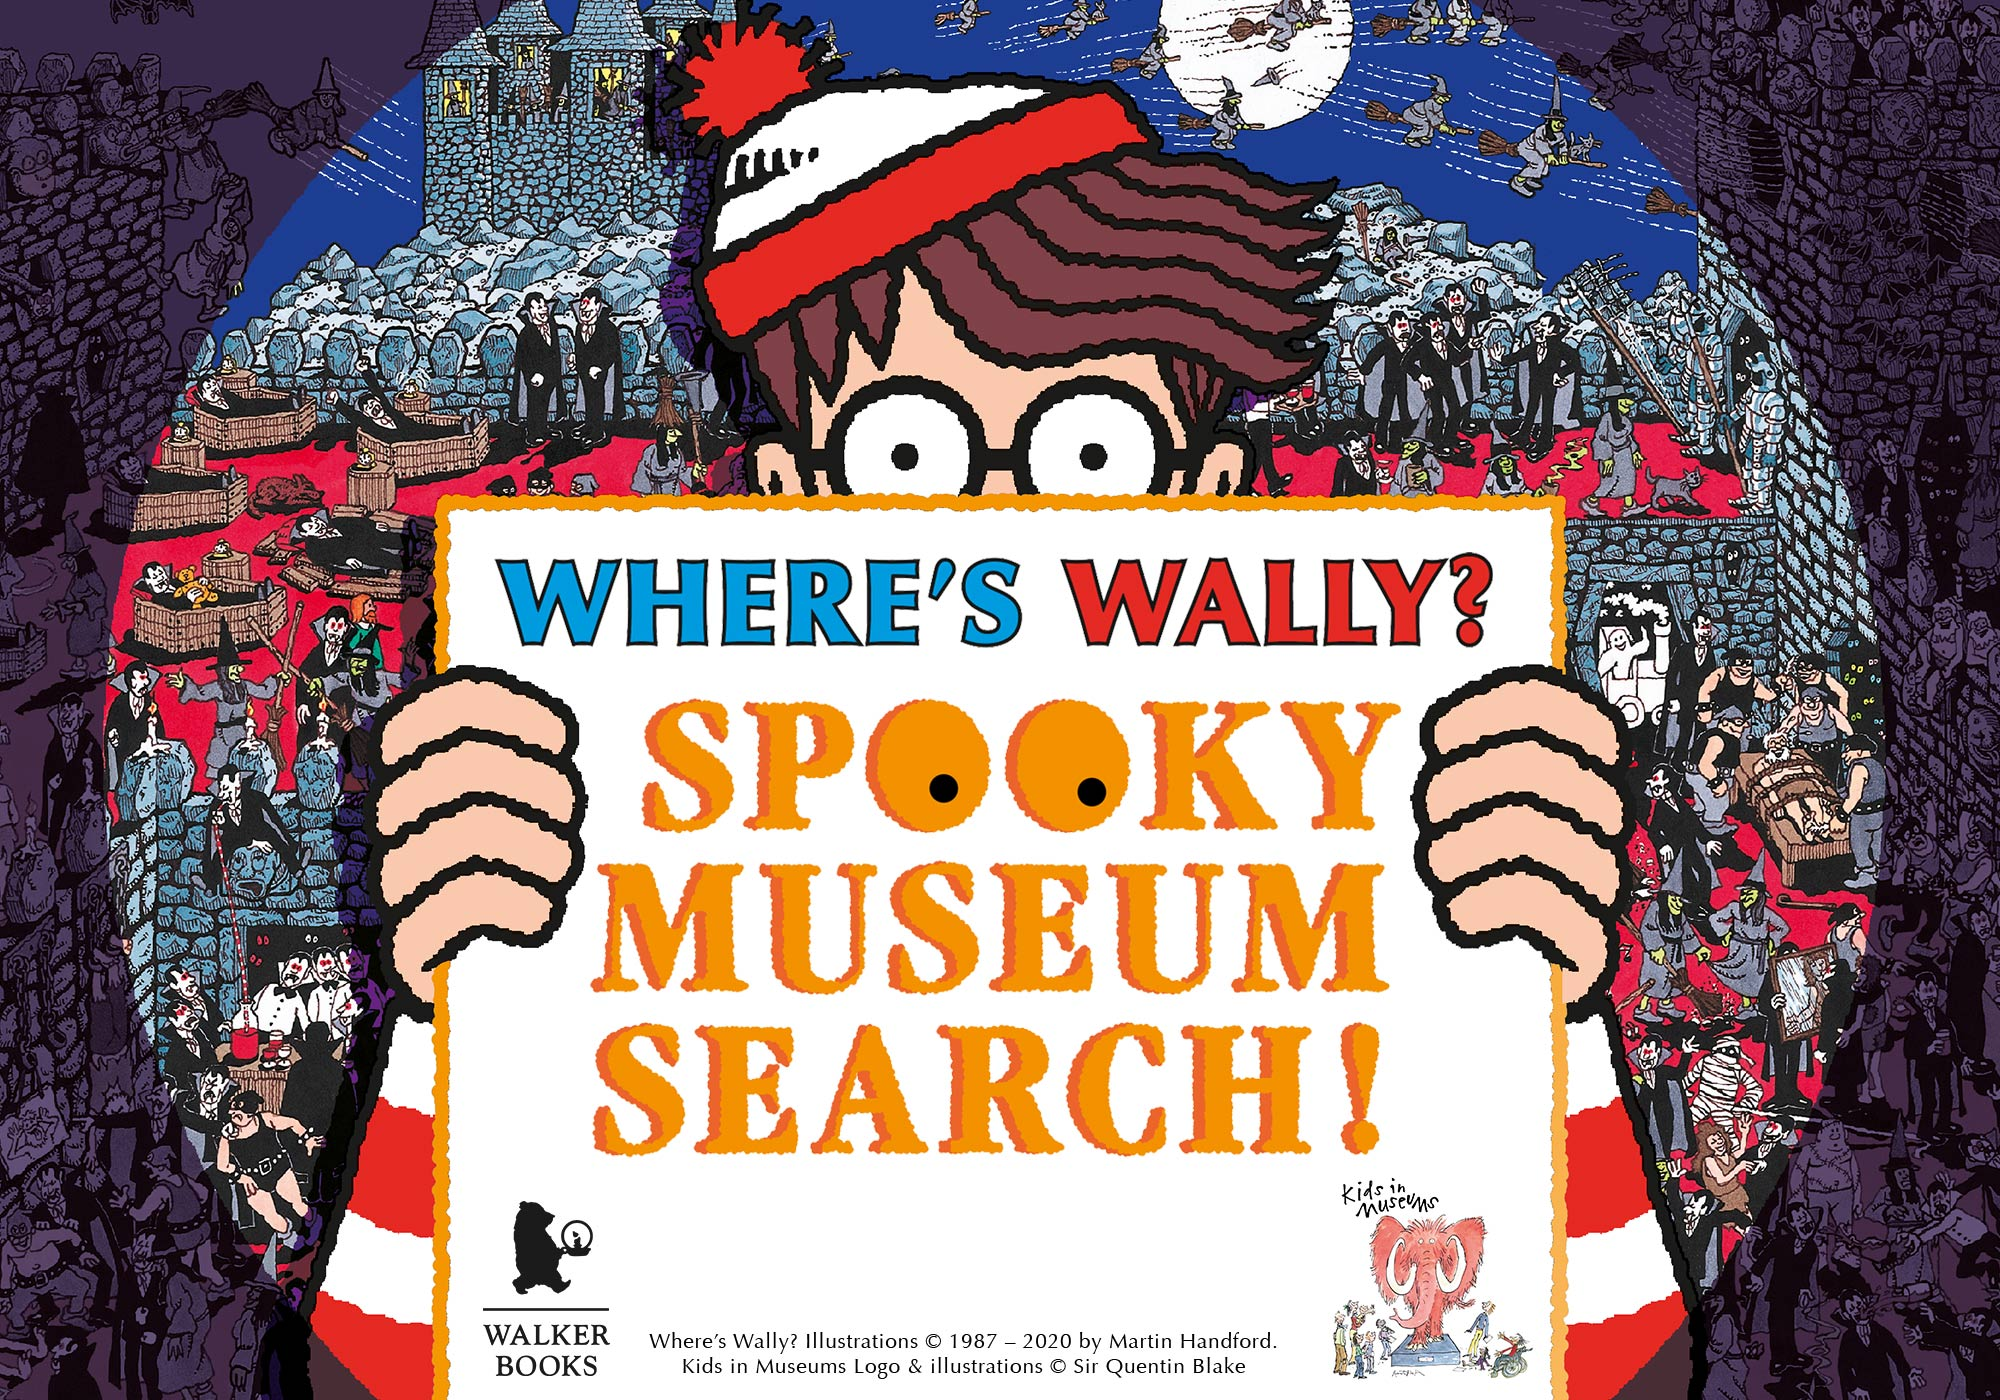 Wally-Spooky-Museum-Search-Banner